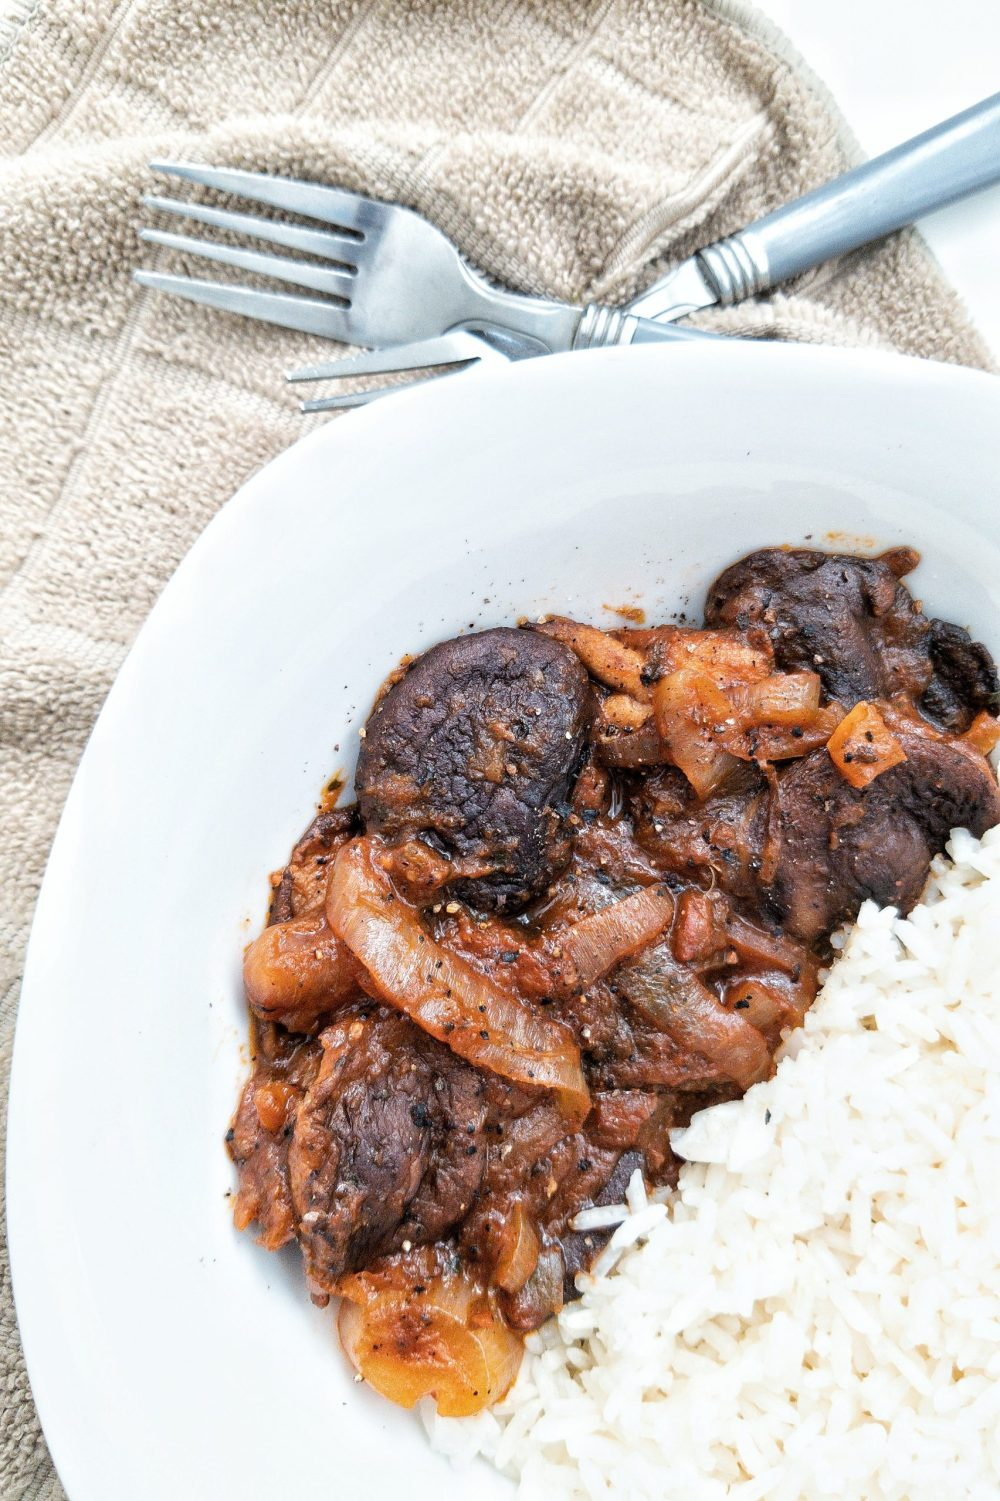 Stewed mushroom with onion and a side of rice in a bowl